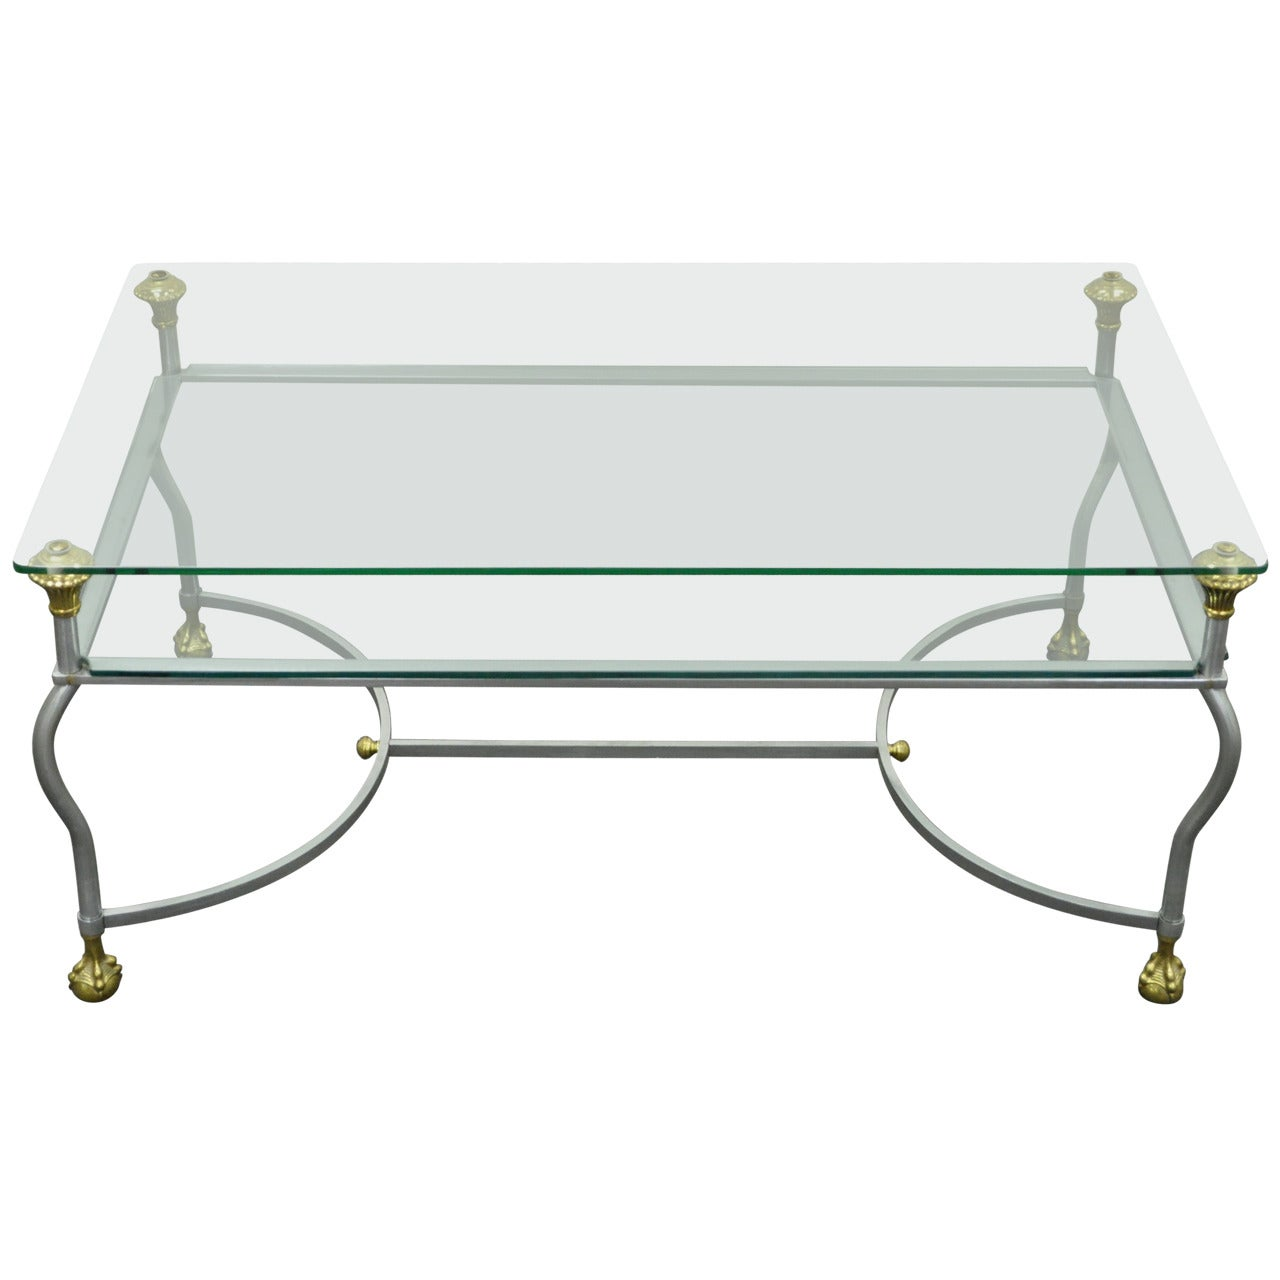 Maison Jansen Style Brass Brushed Steel & Glass Ball and Claw Foot Coffee Table